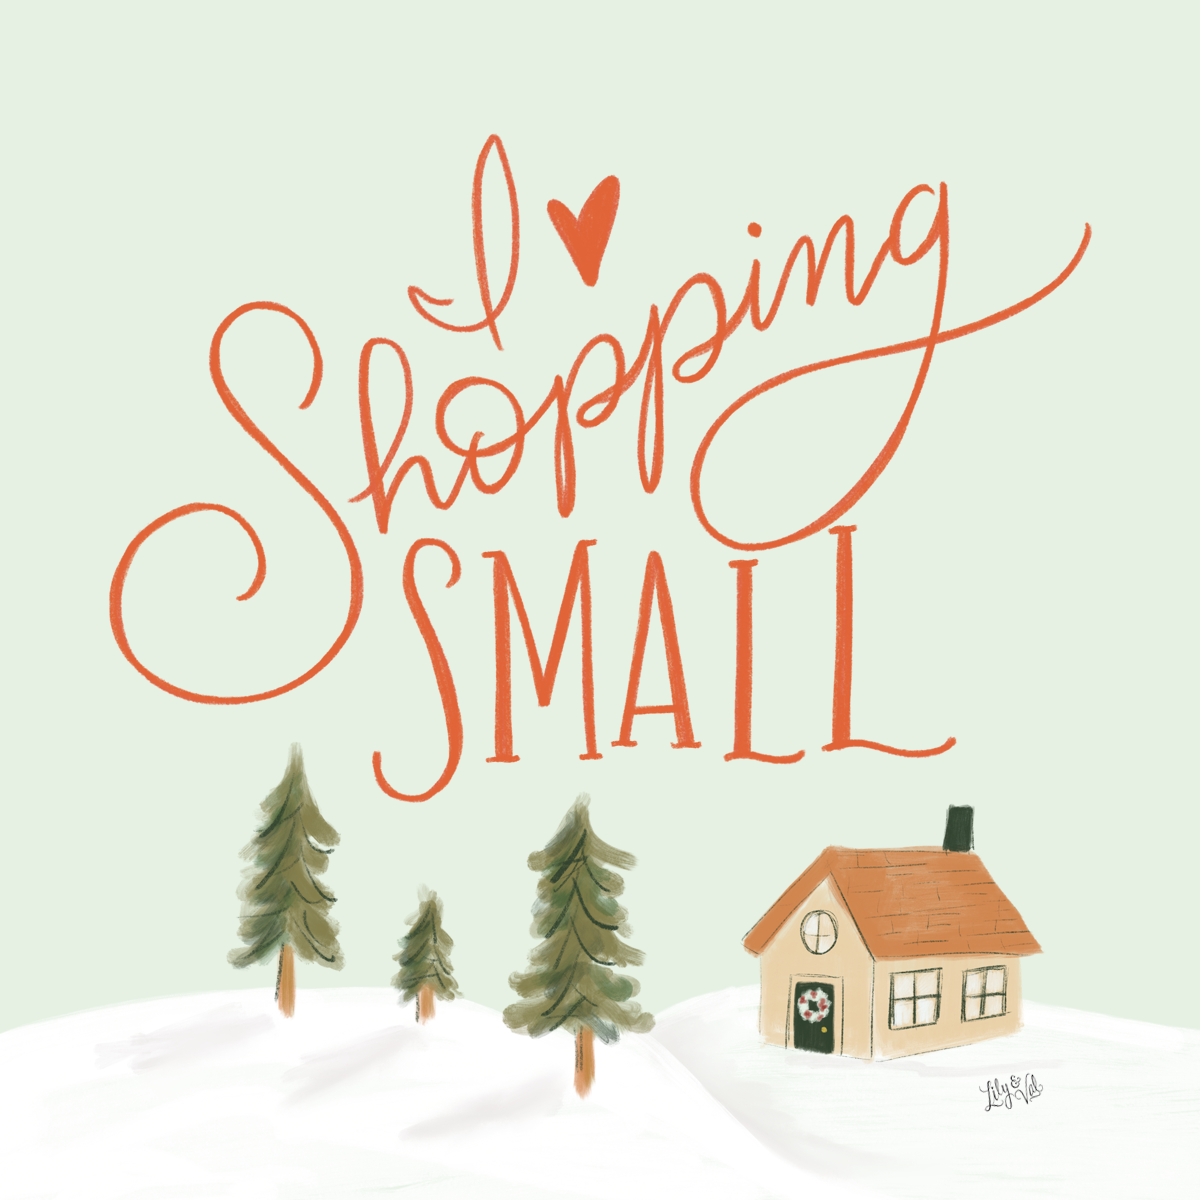 Free Hand-Drawn Graphic to share the Shop Small Love on Small Business Saturday